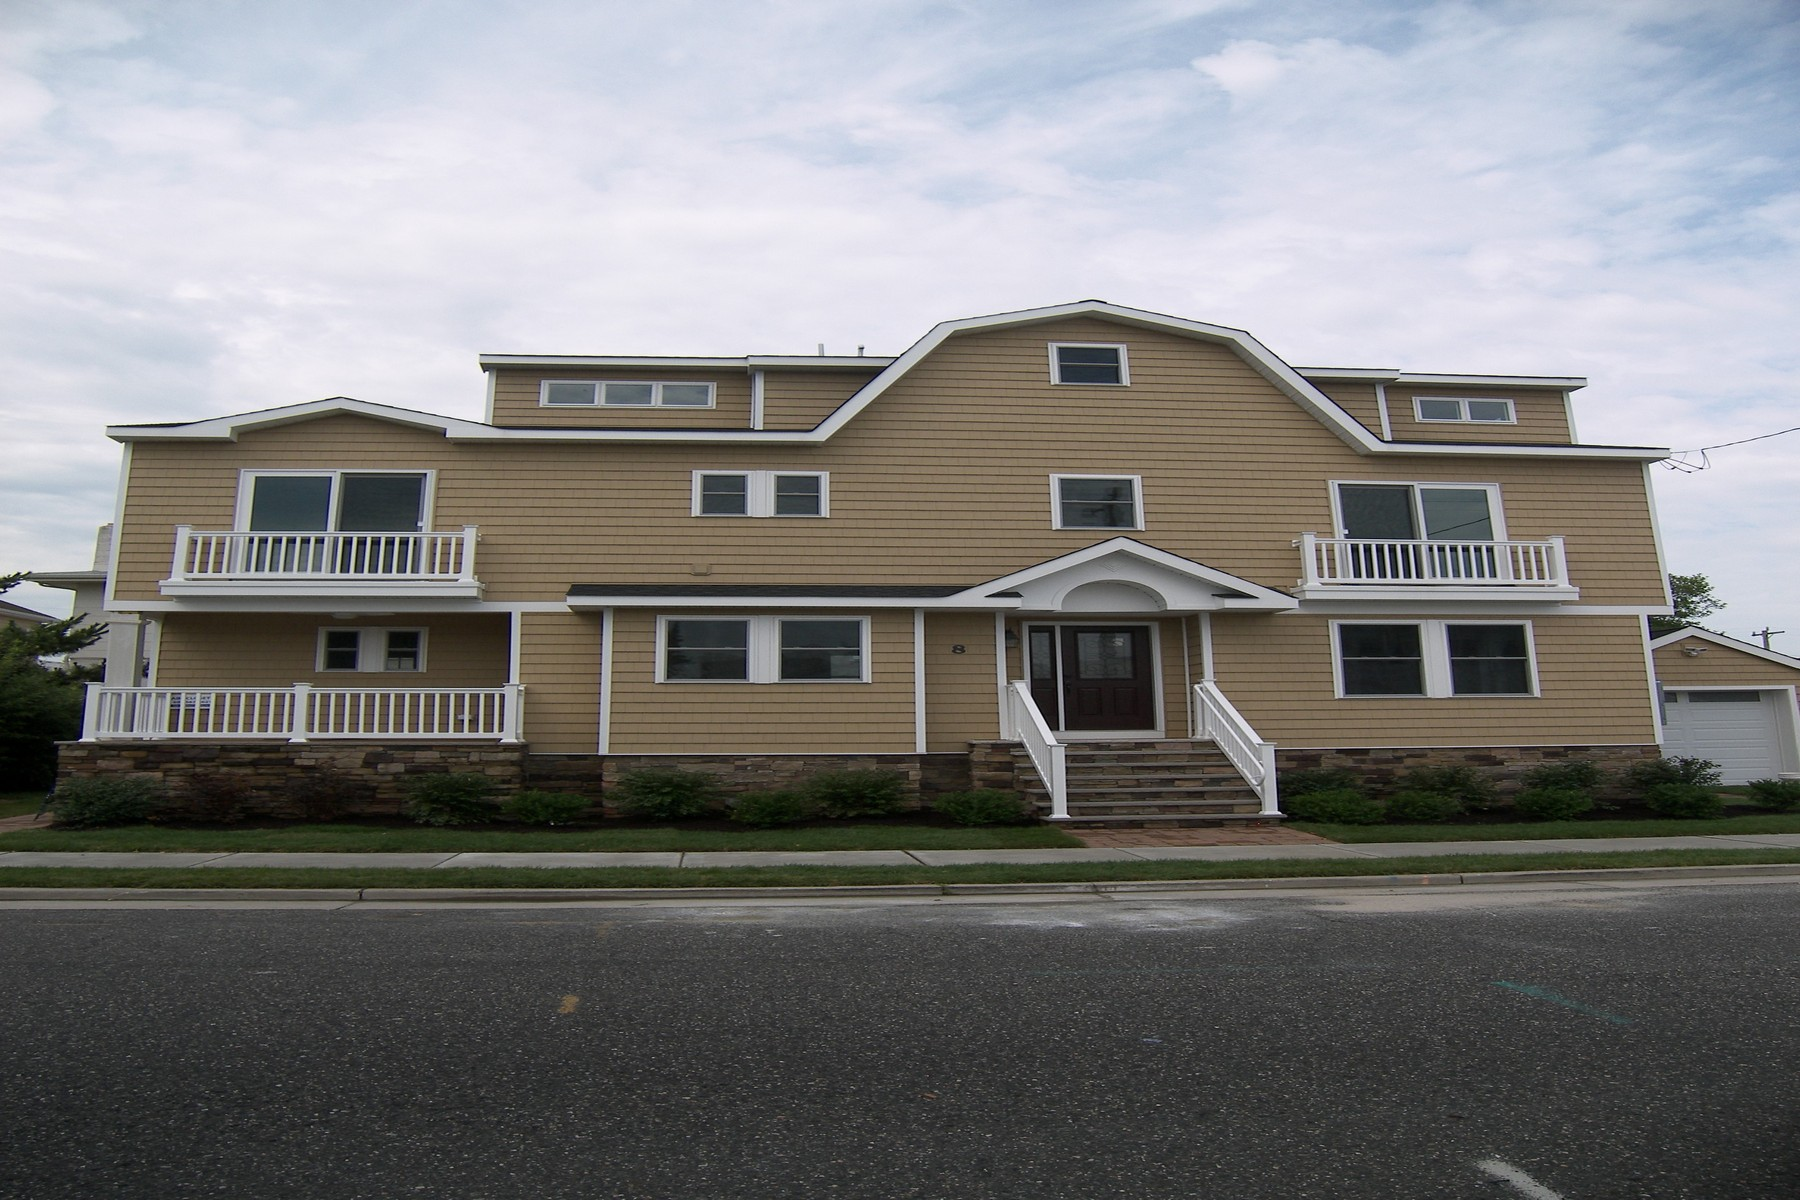 Single Family Home for Sale at 8 N Douglas Avenue Margate, New Jersey 08402 United States